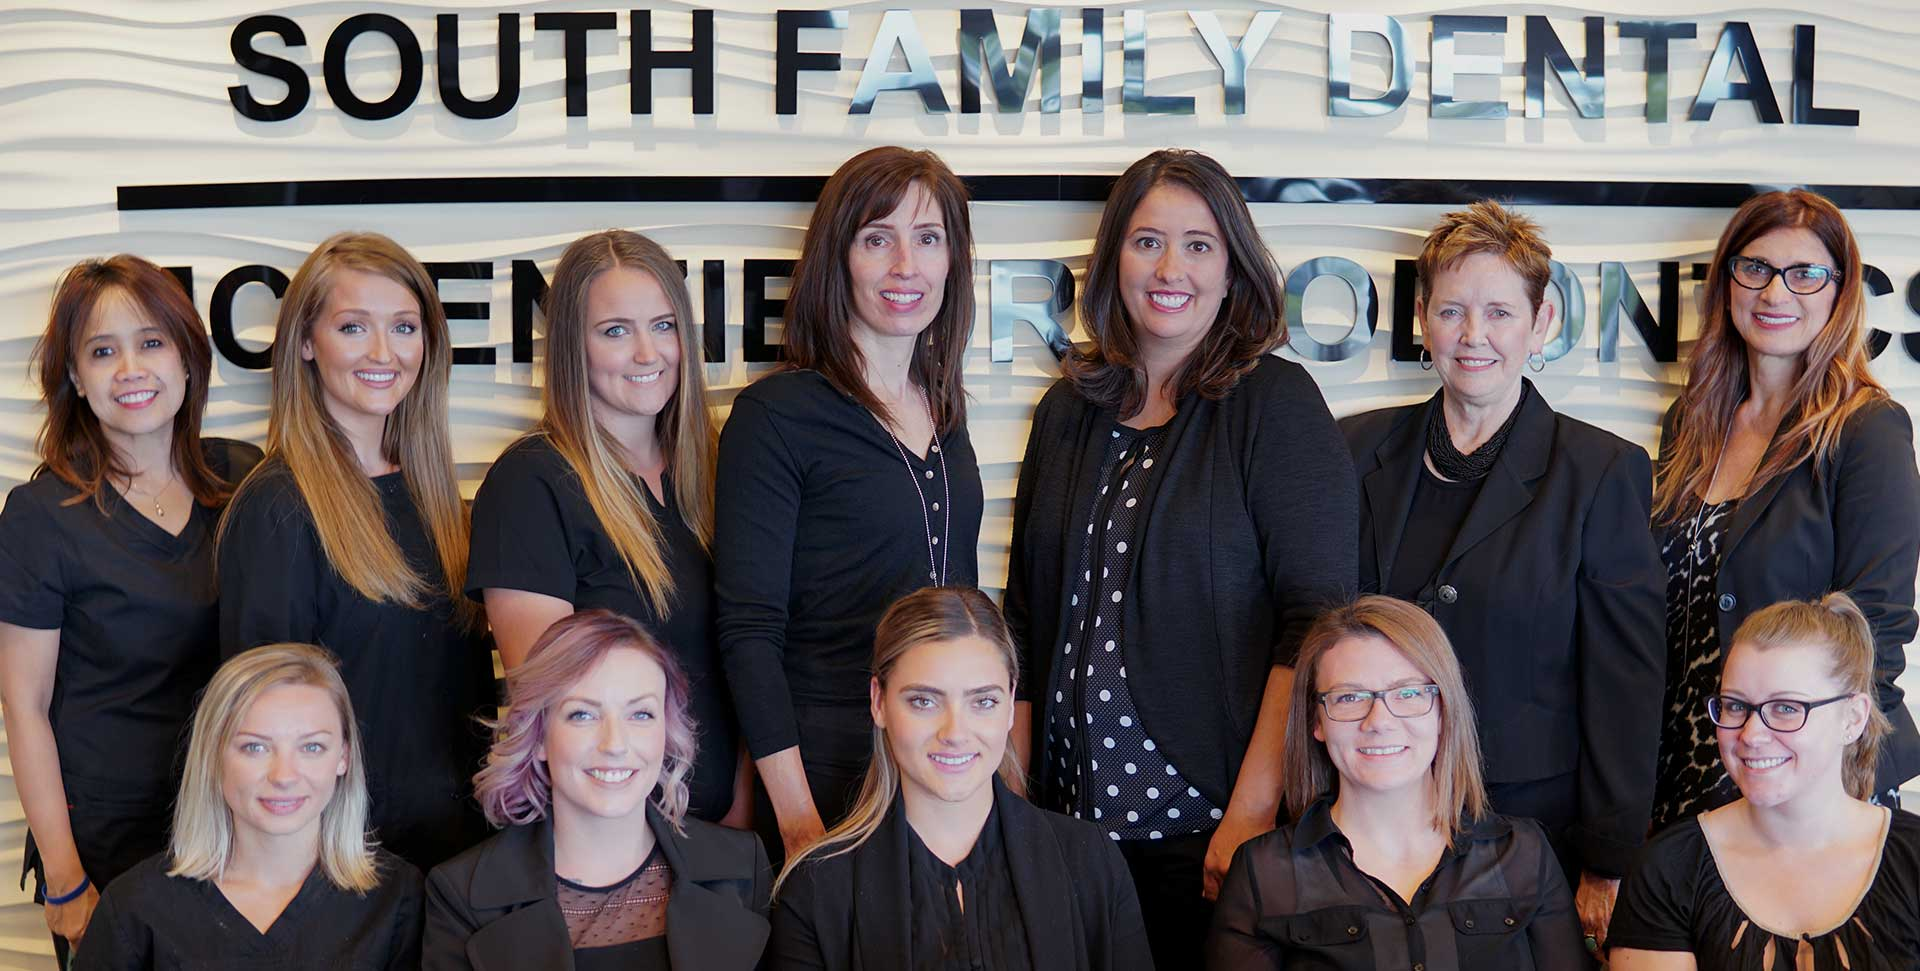 South Calgary Orthodontist | McKenzie Orthodontics Team